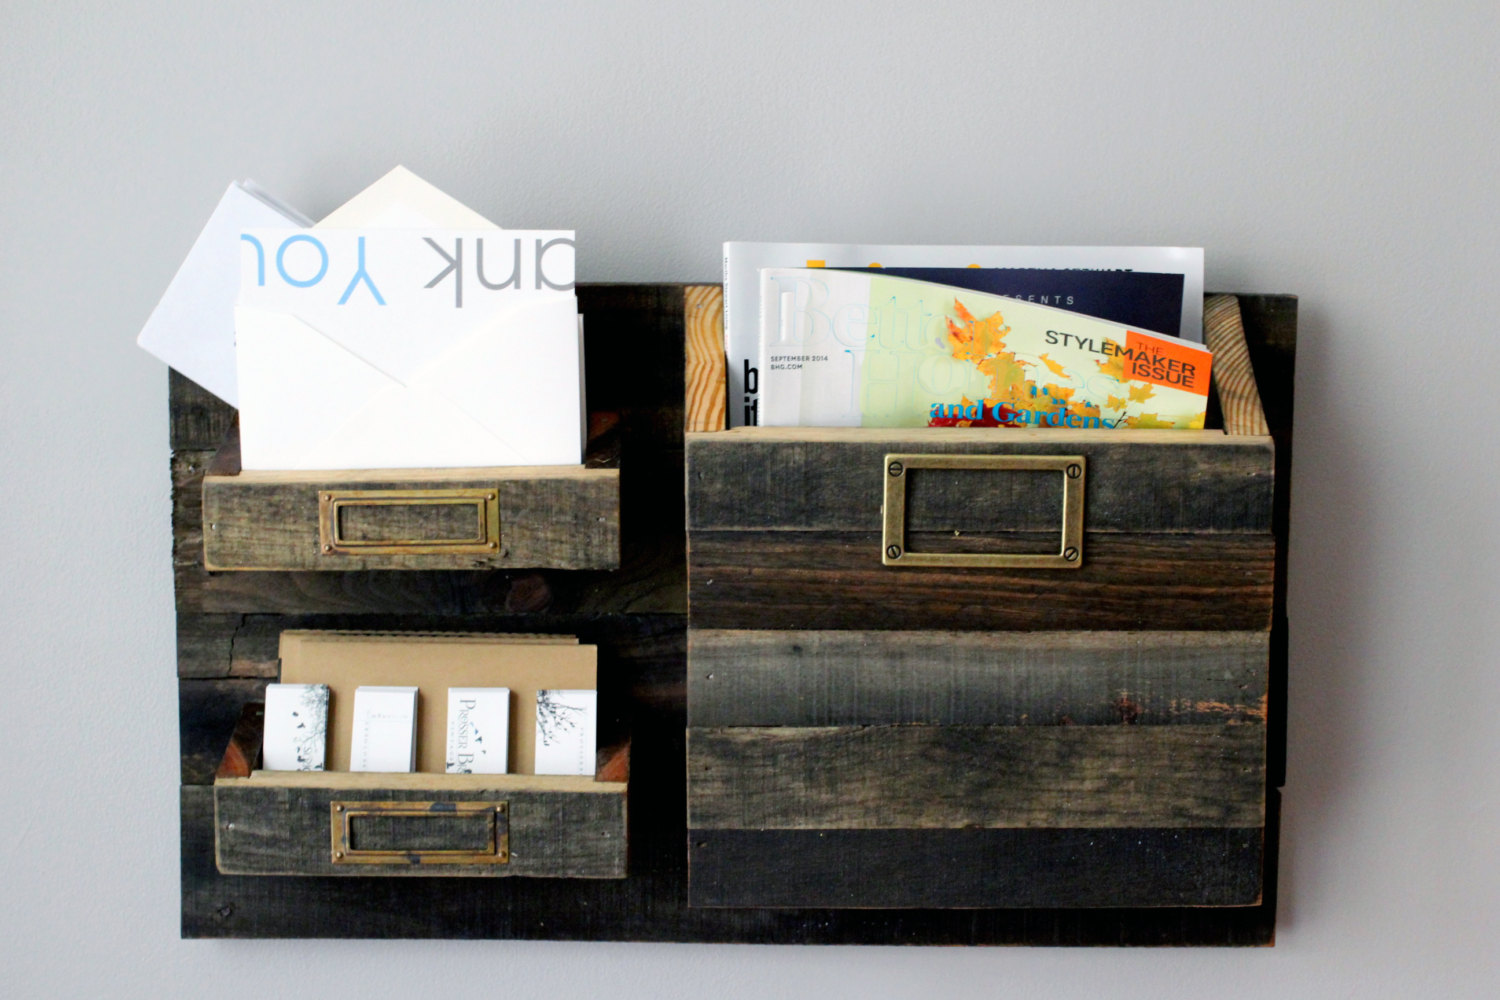 Wall Mounted Mail Organizer A Best Storing Solution For